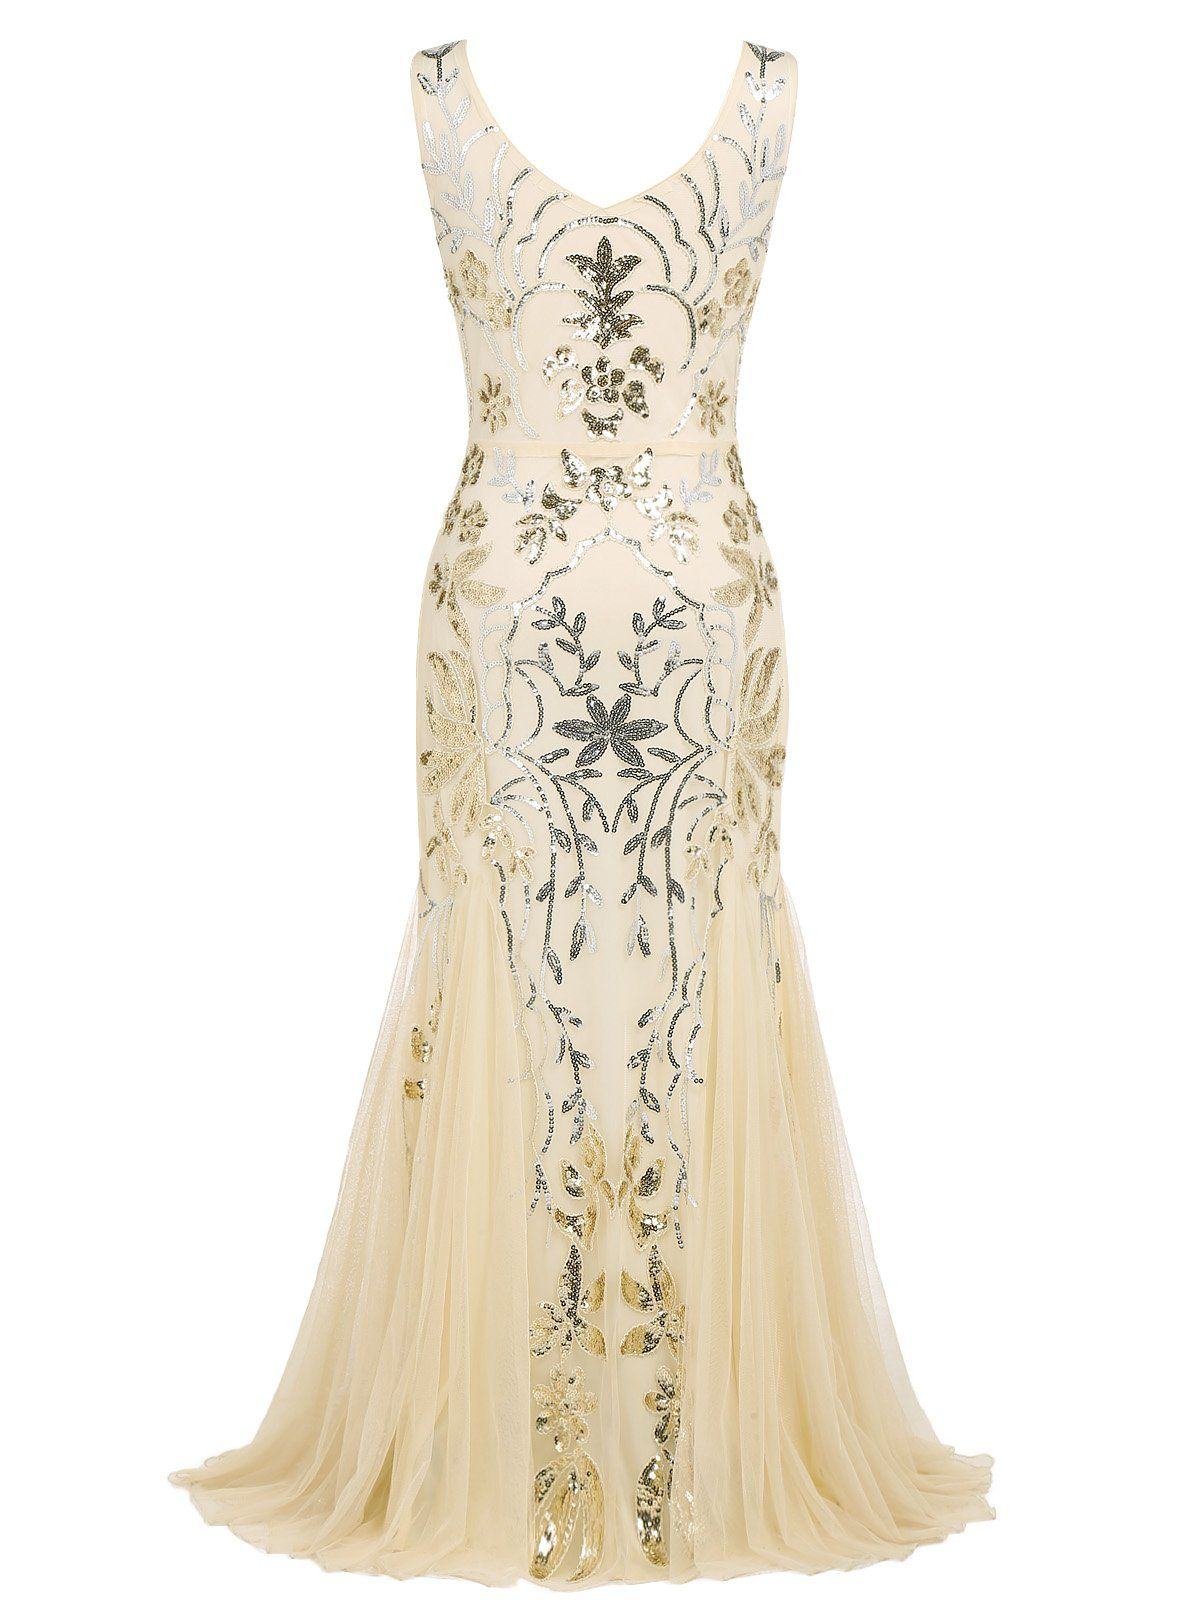 65ab4197f78 Apricot 1920s Sequin Maxi Dress – Retro Stage - Chic Vintage Dresses and  Accessories